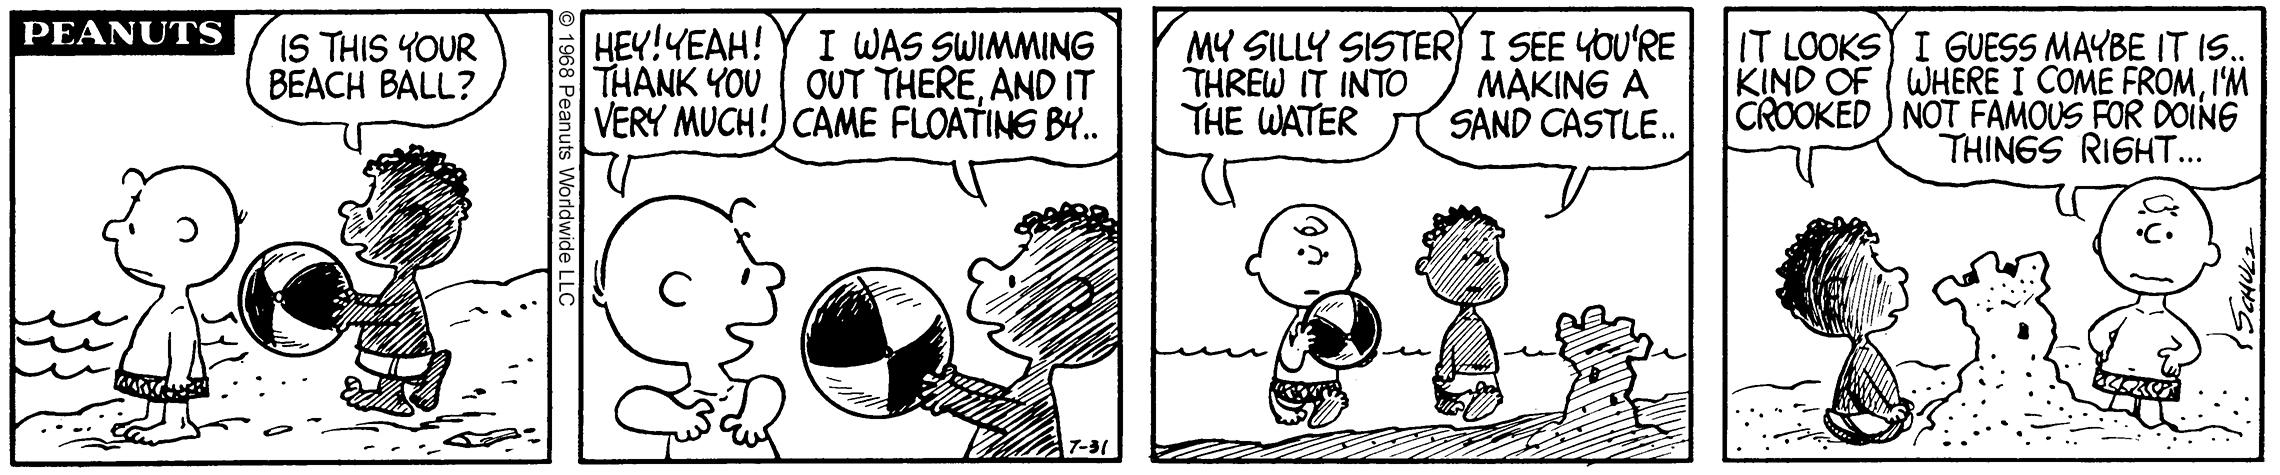 Comic strip of peanuts